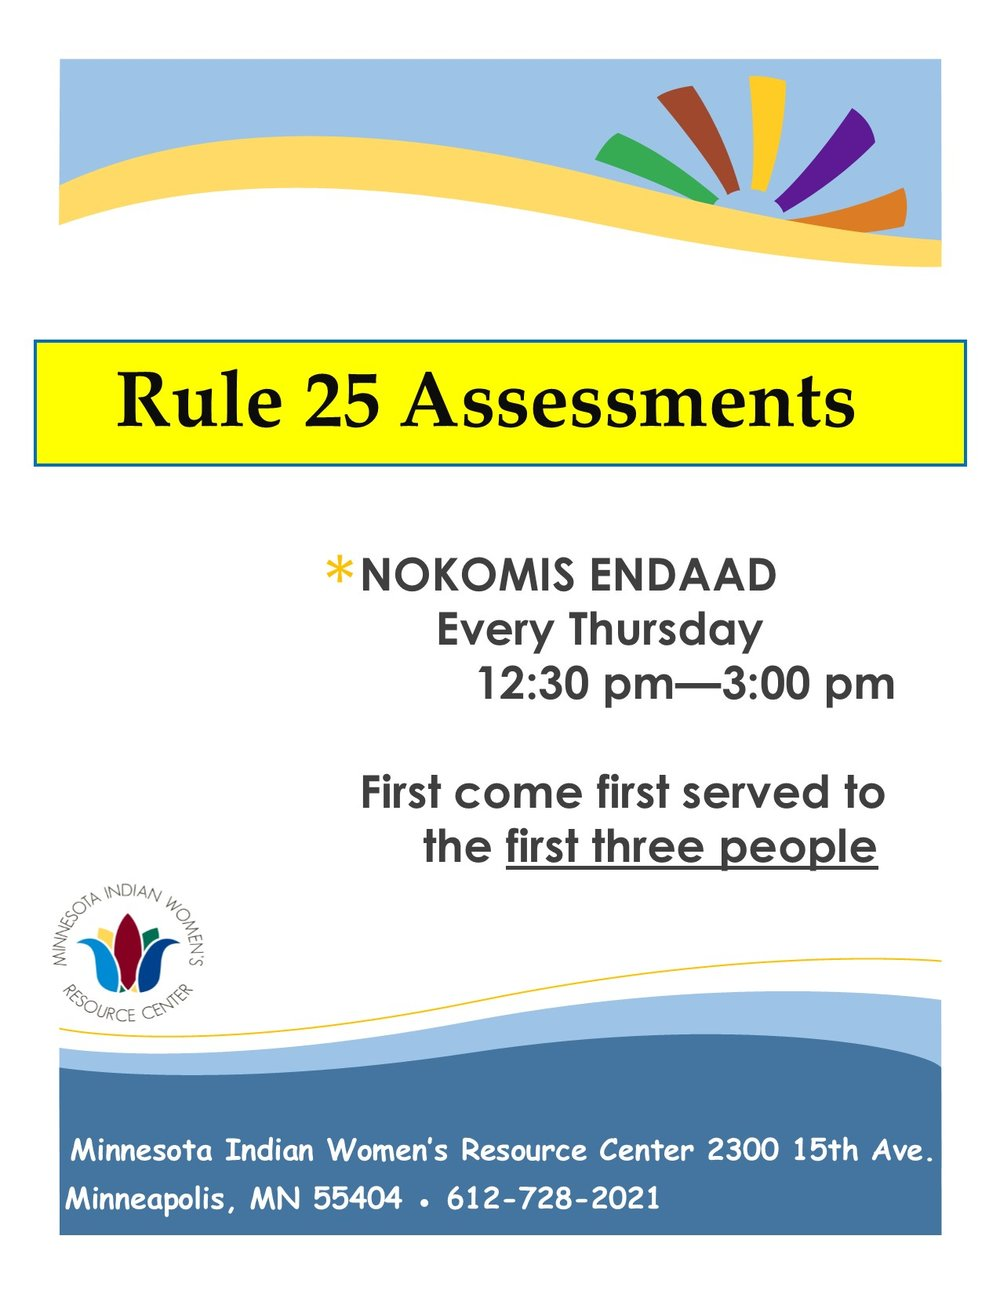 Rule 25 assessments flyer.jpg